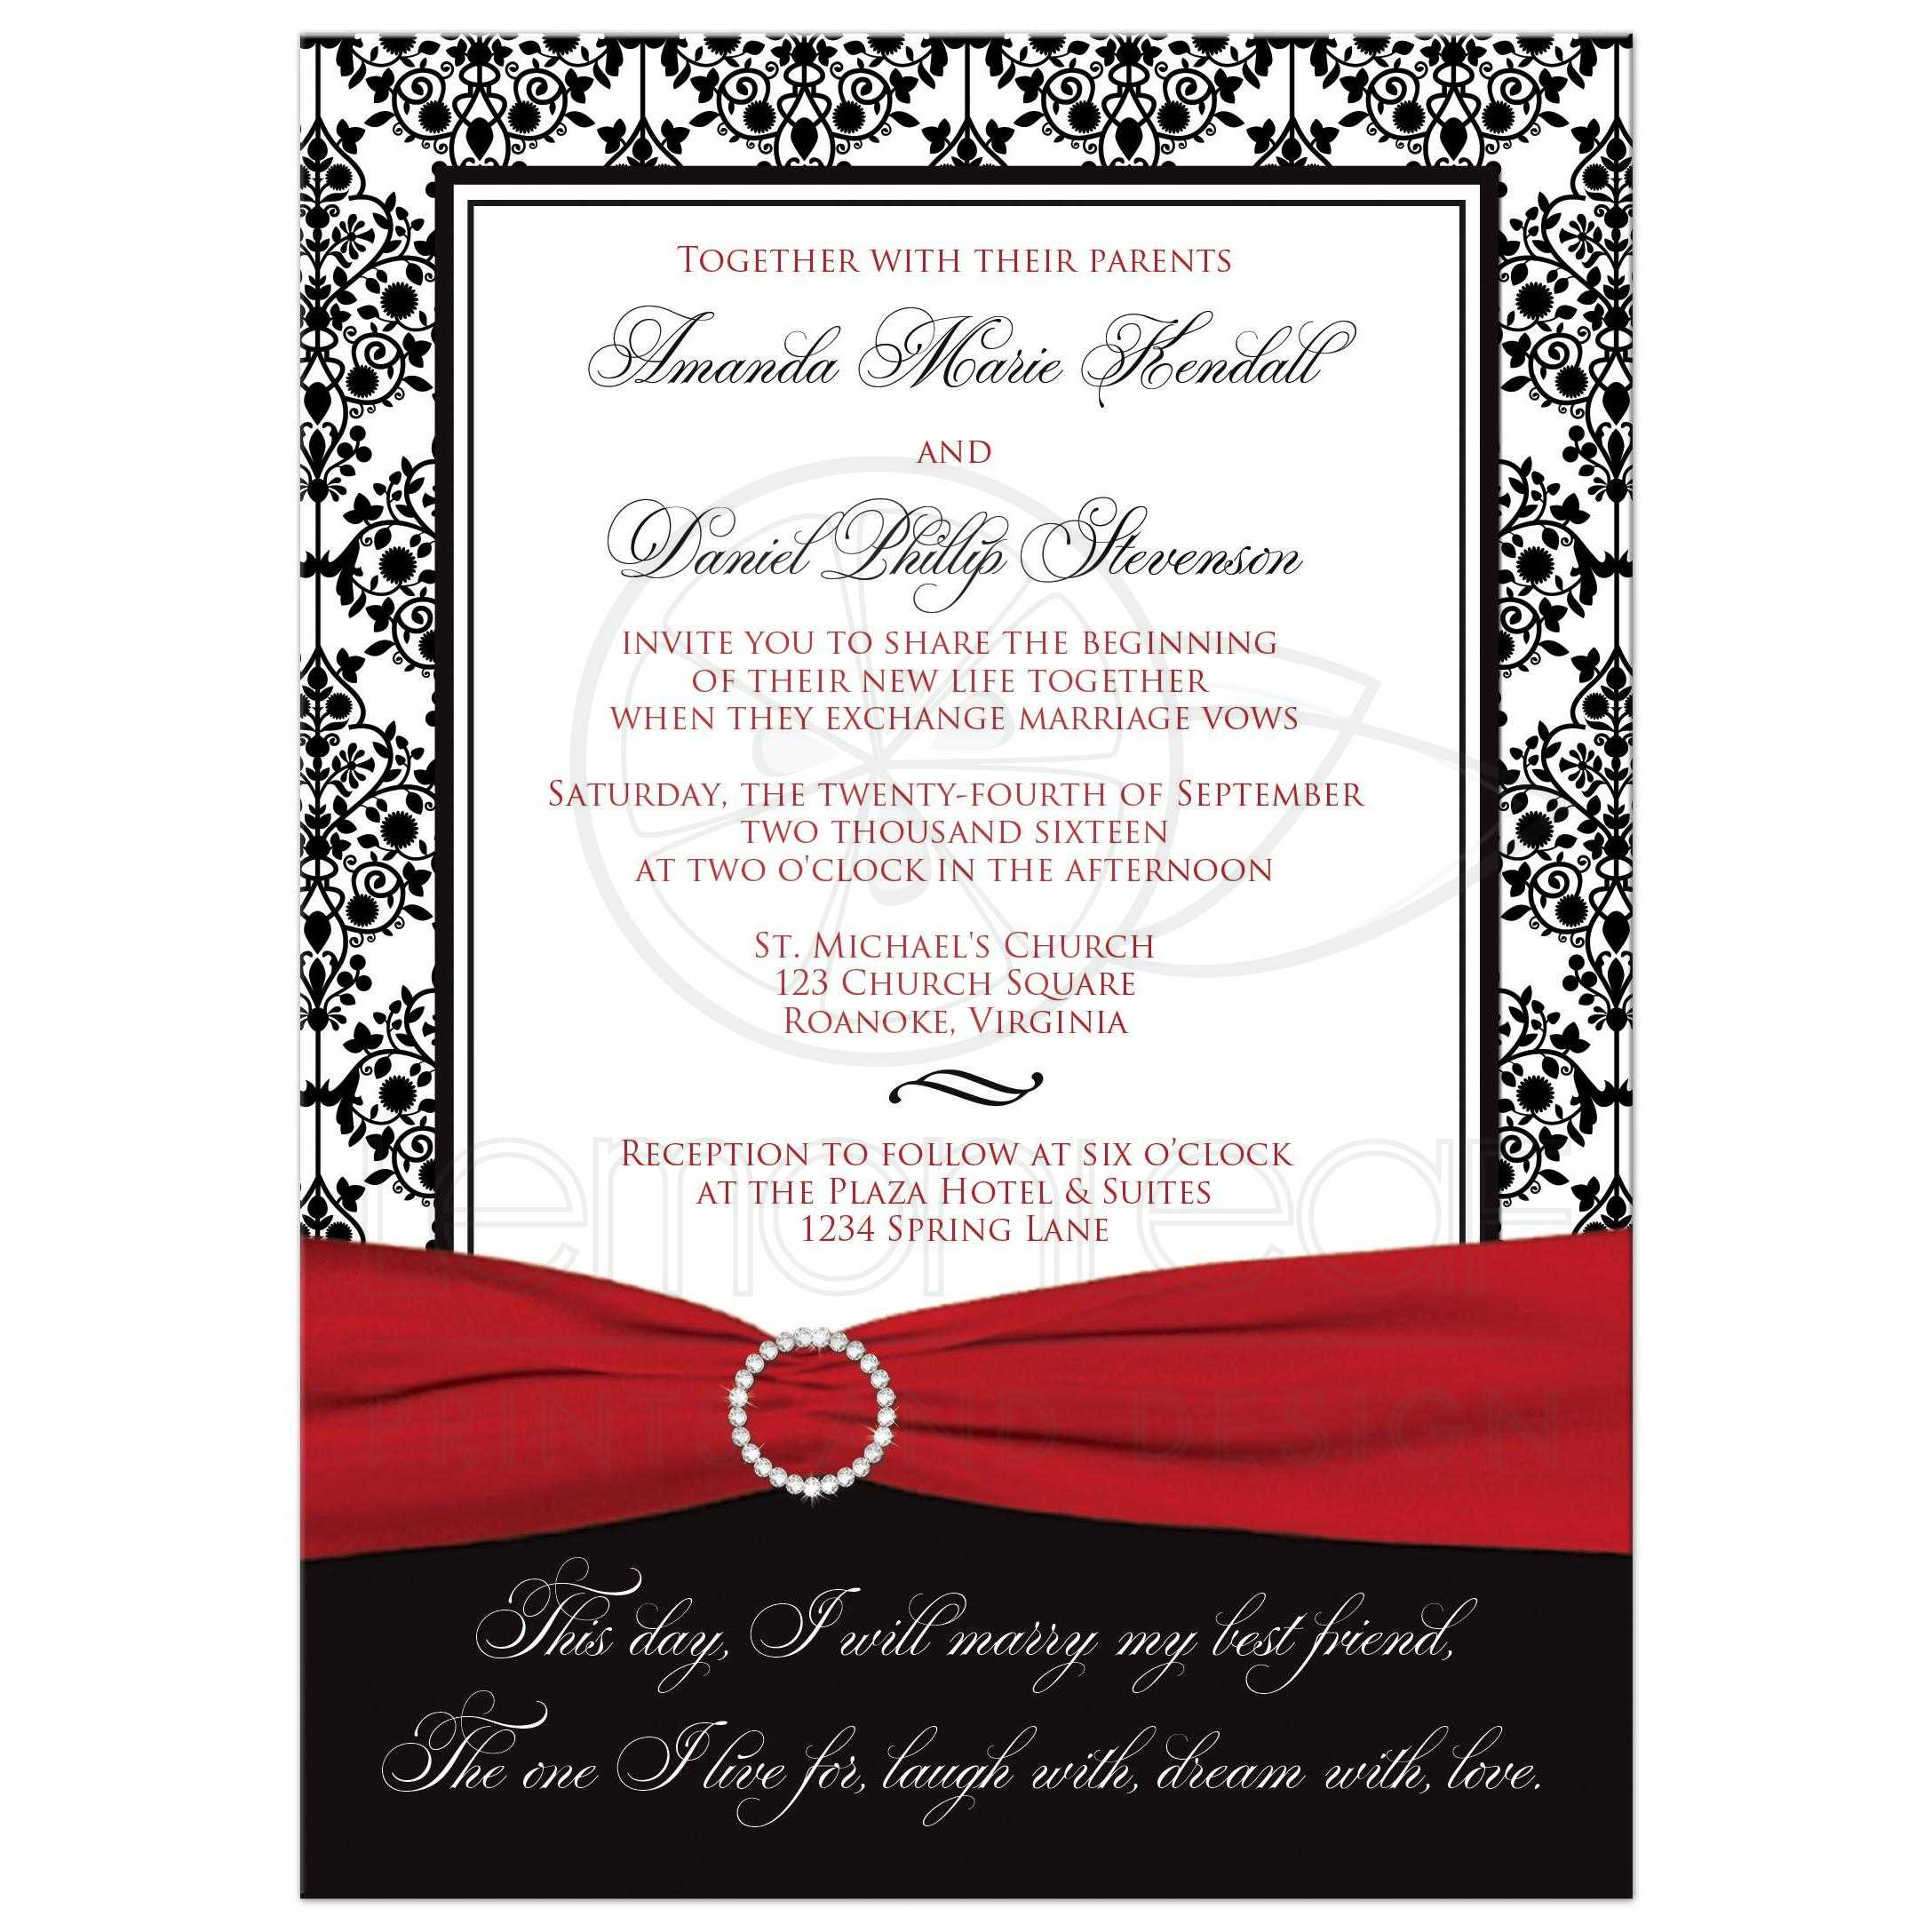 black and white wedding invitations with ribbon - Romeo.landinez.co